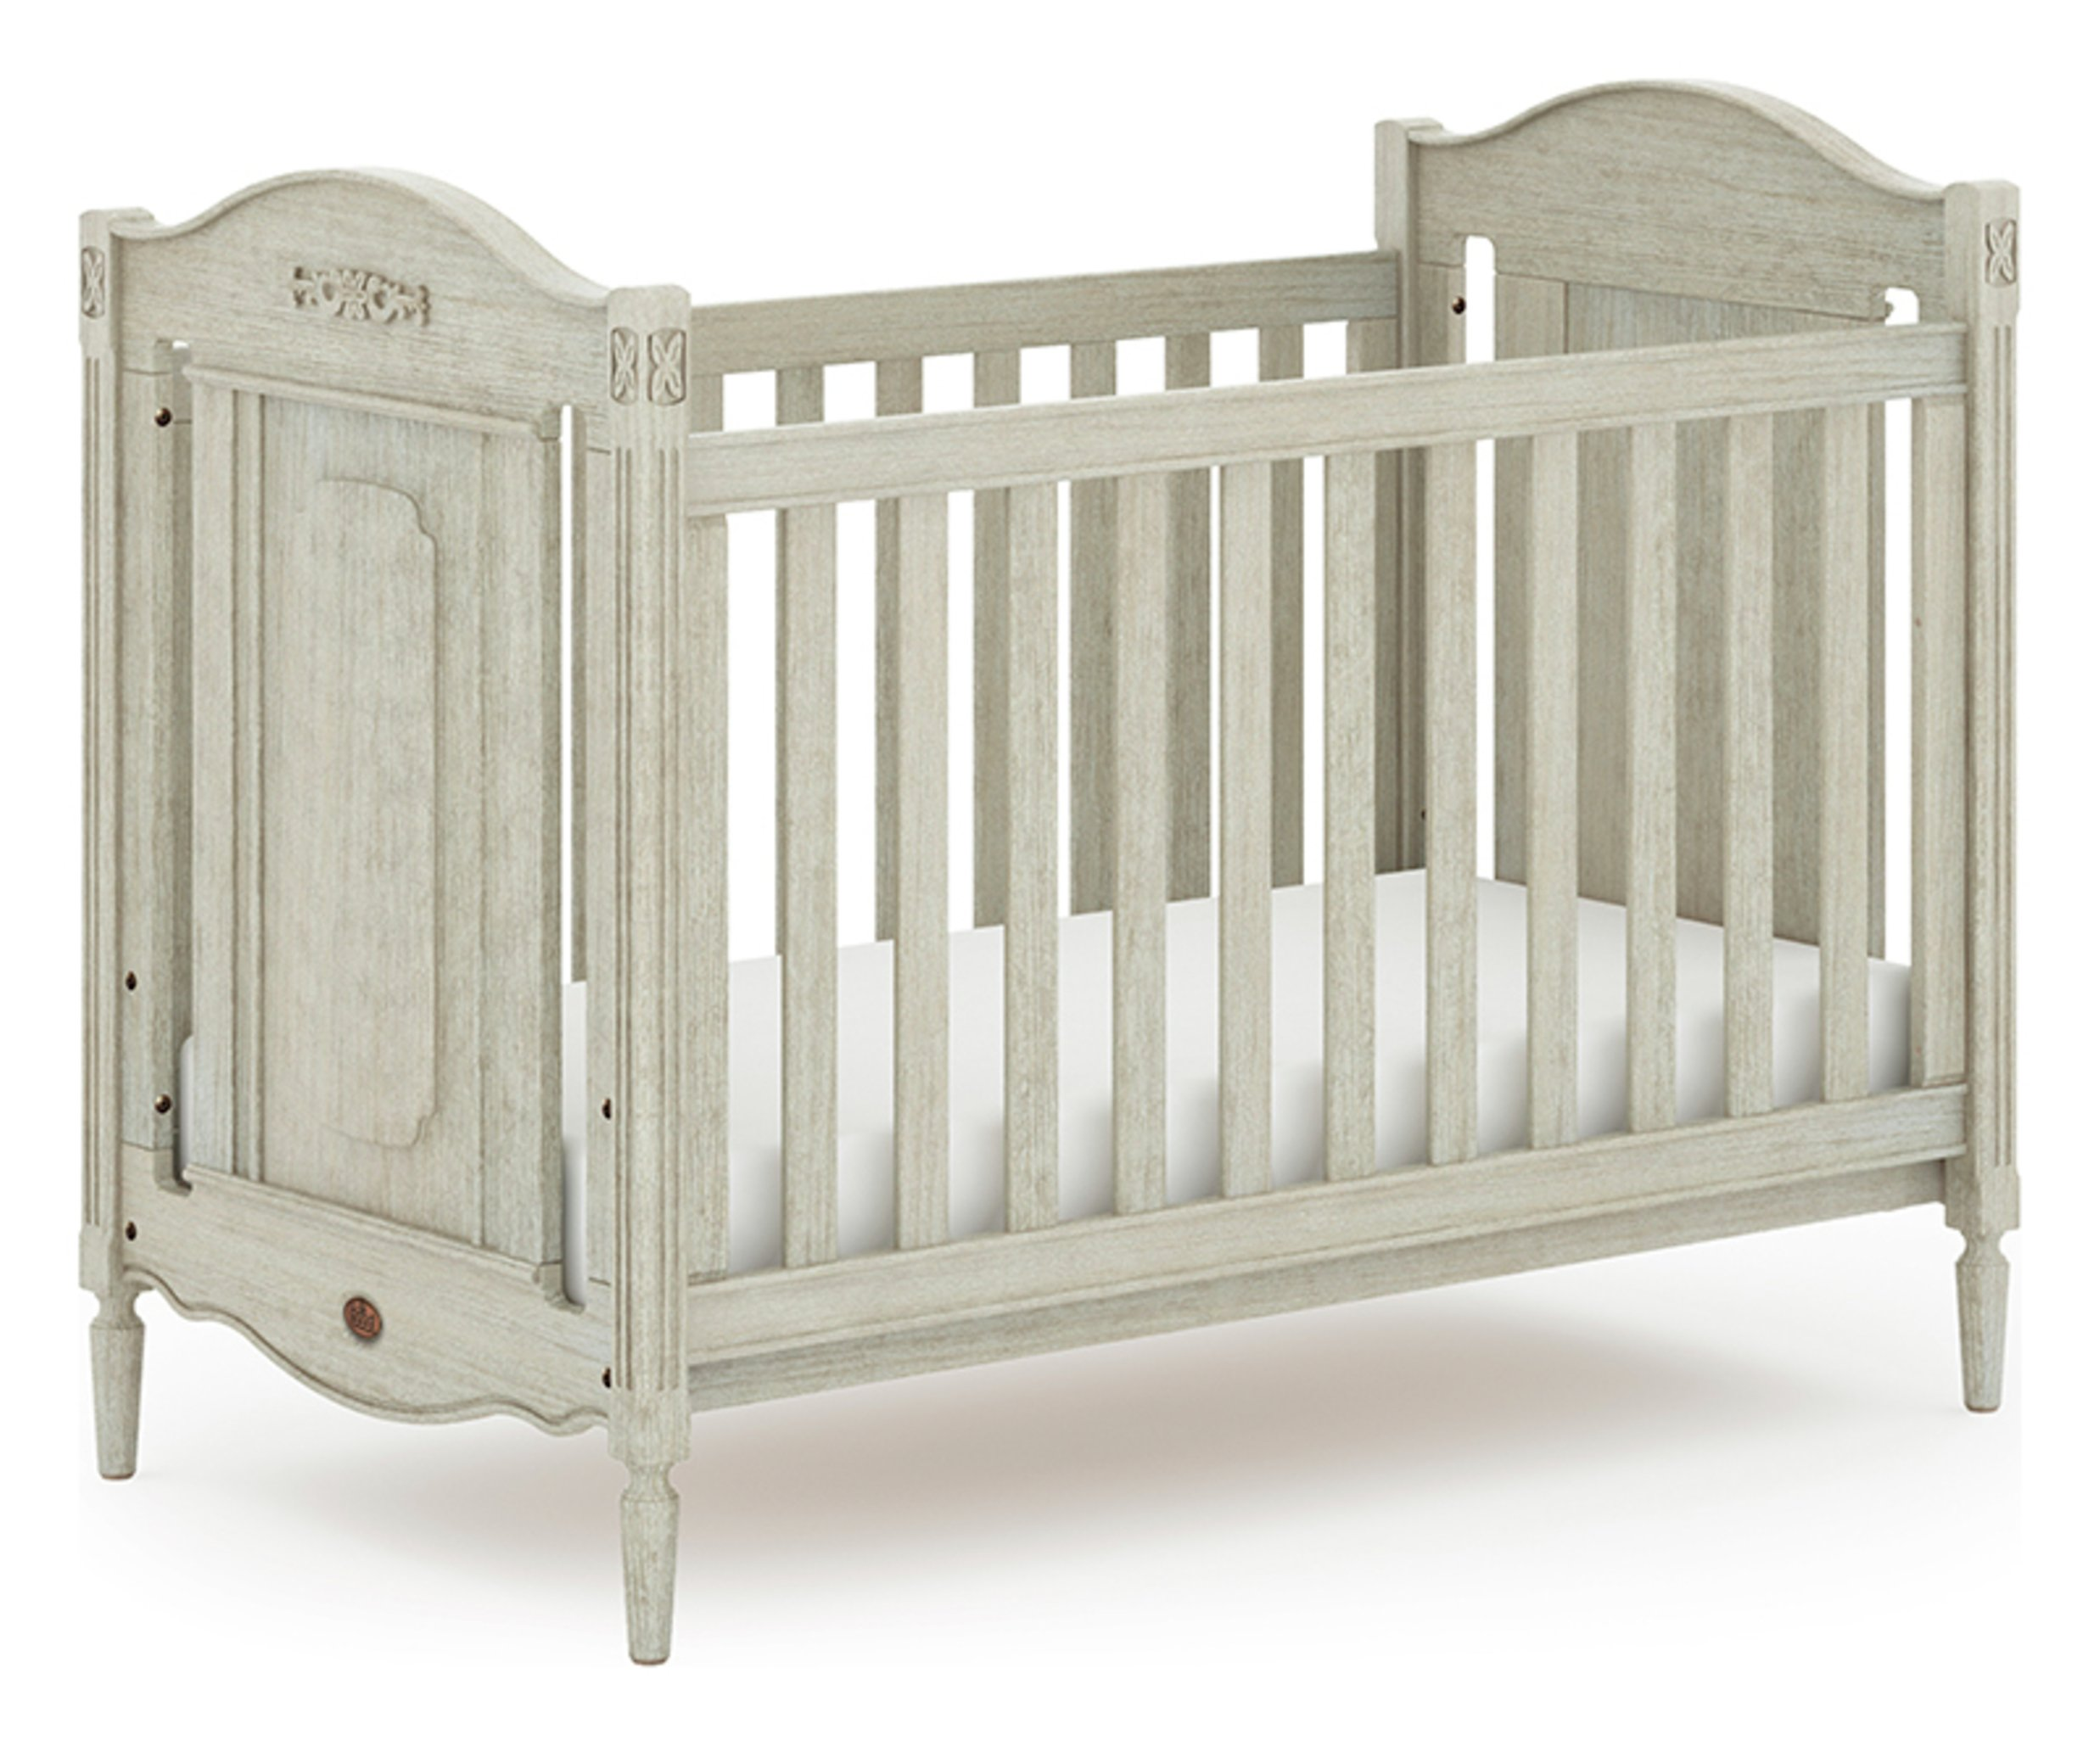 Image of Grace Cot Bed - Antiqued Grey